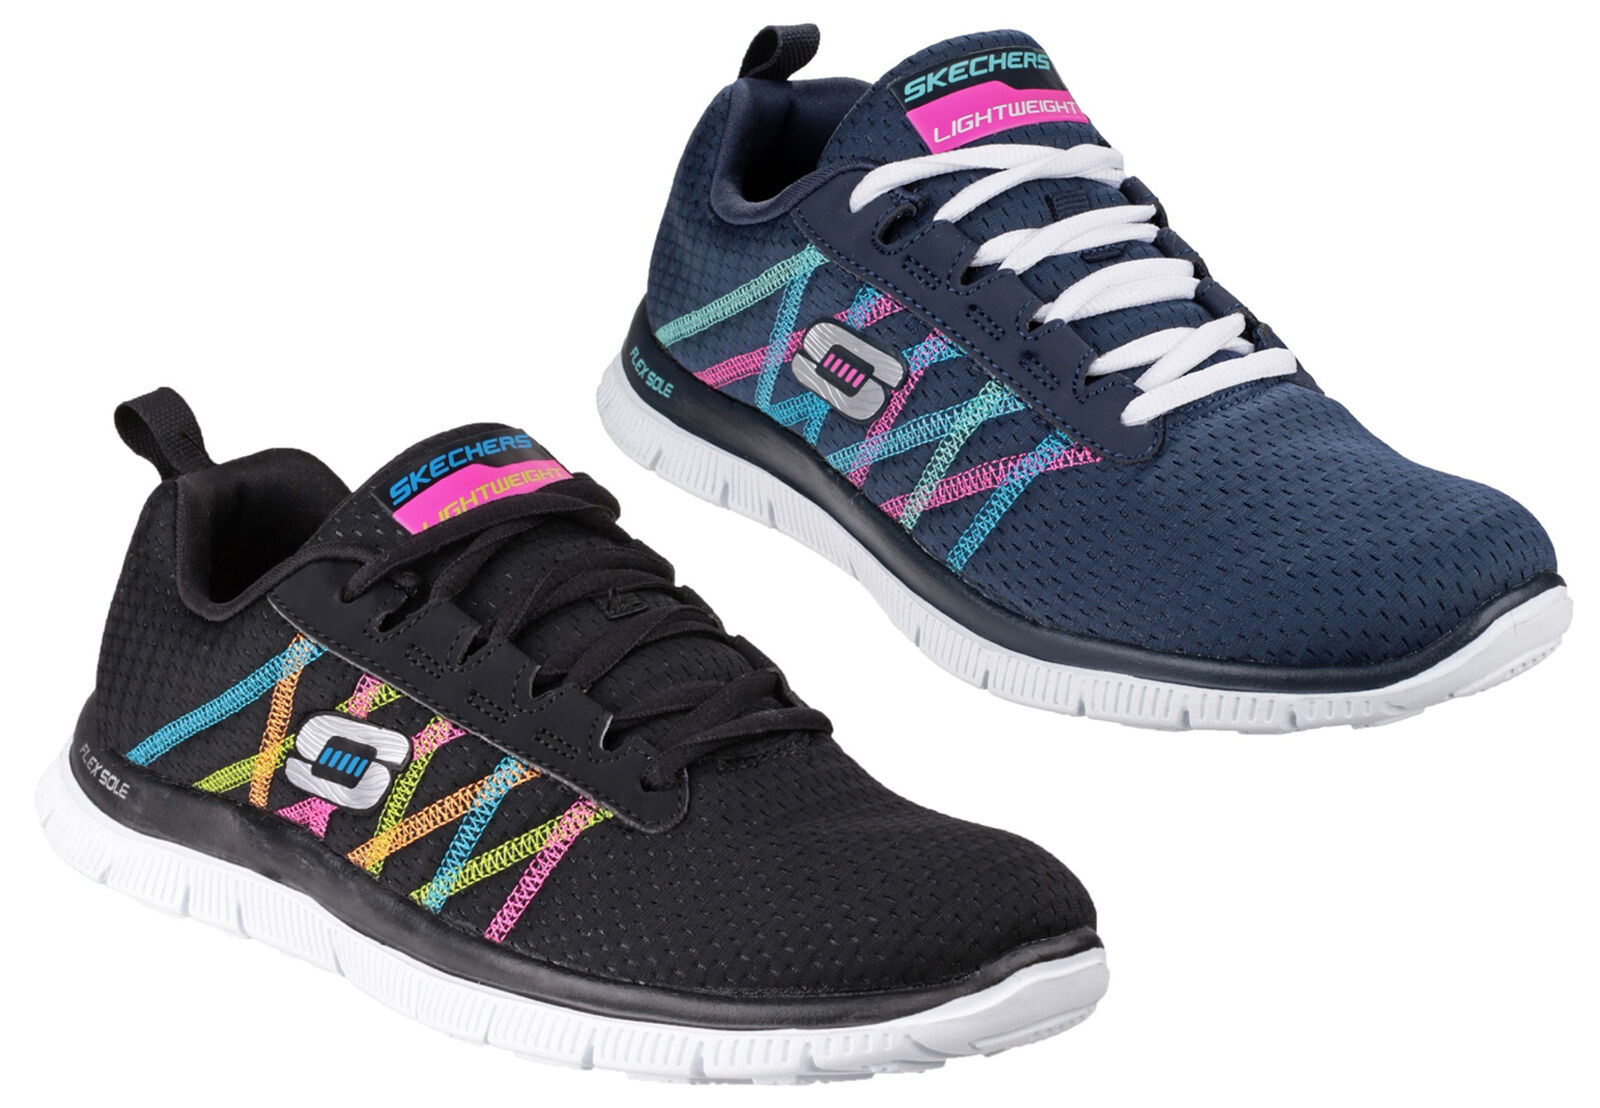 Skechers Sports Flex Appeal Something Fun Damenschuhe Trainers Schuhes UK3-8